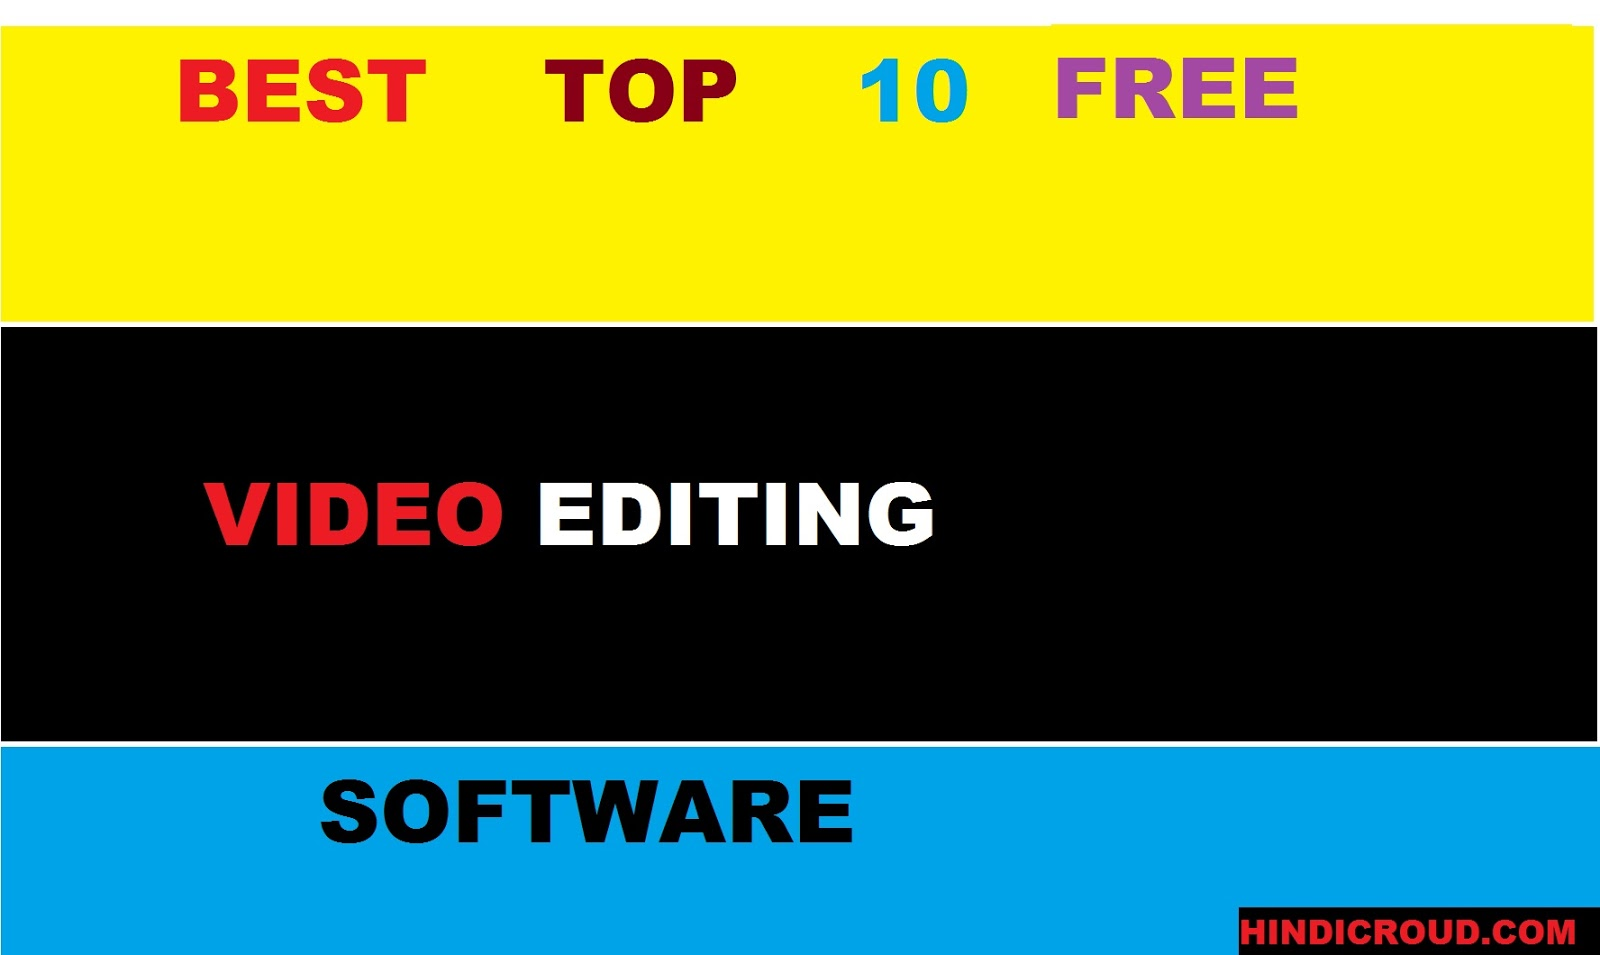 Best Top 10 Rated Free Video Editing Software List for pc/computer